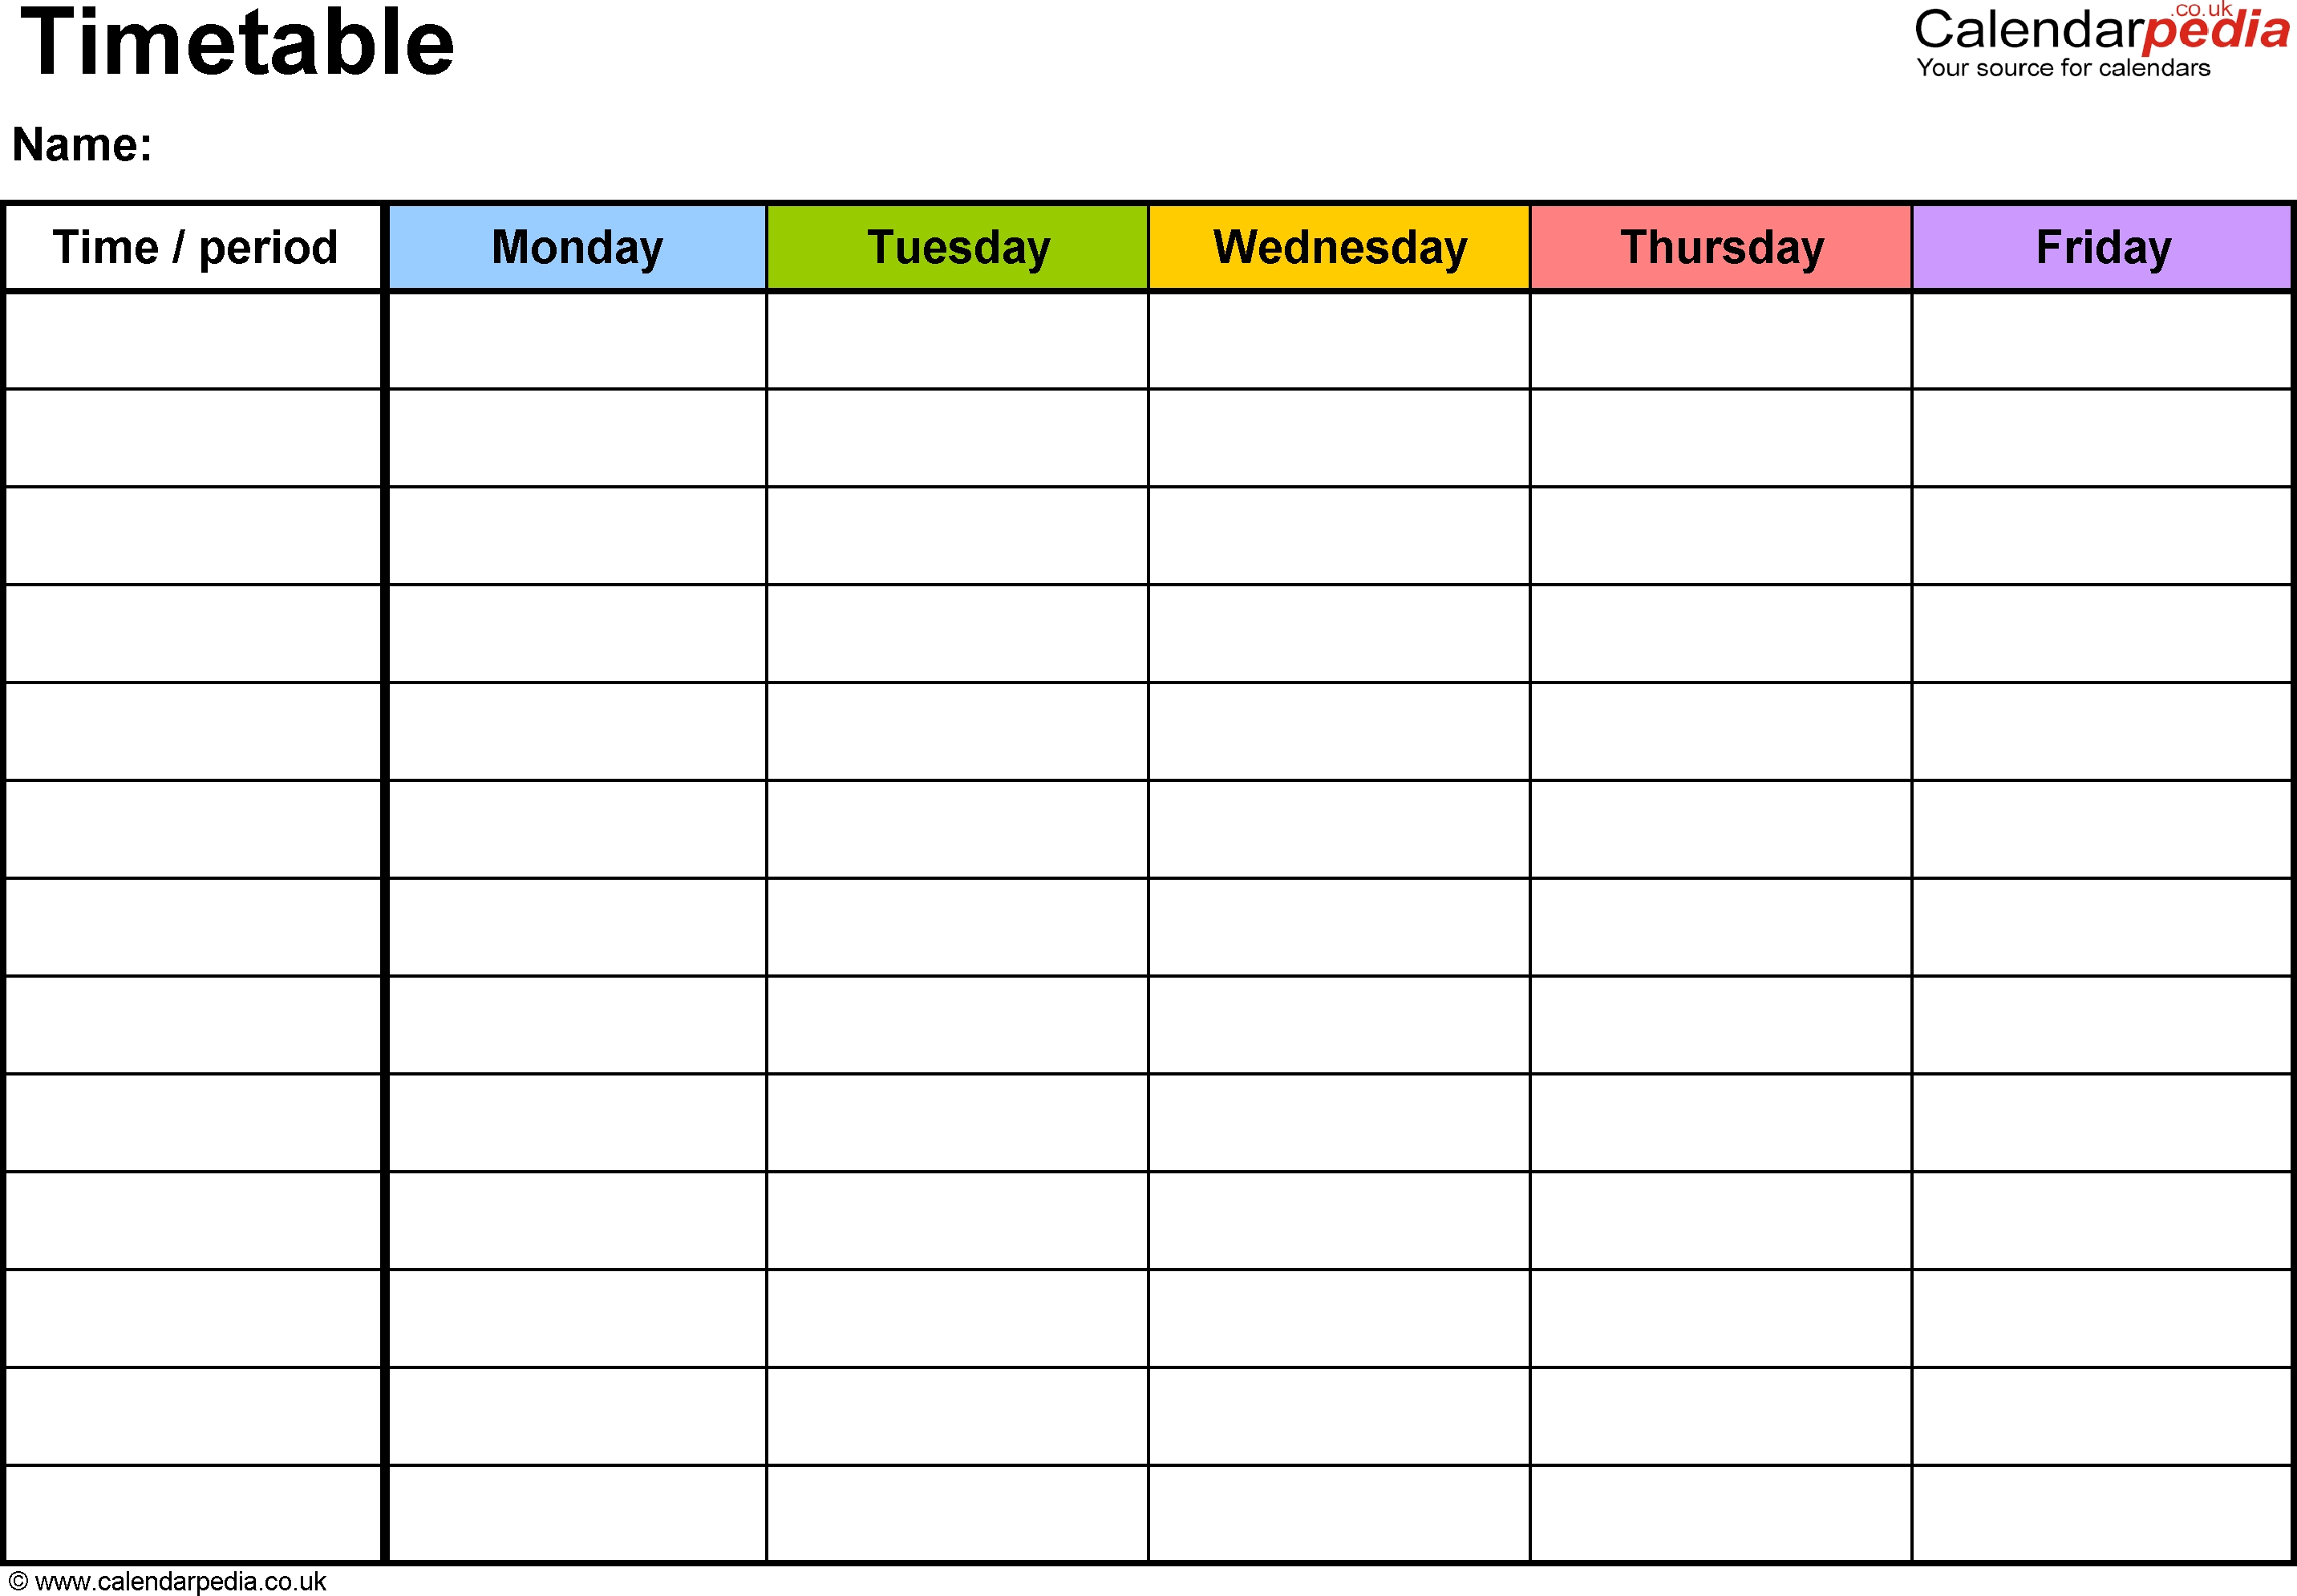 Pdf Timetable Template 2: Landscape Format, A4, 1 Page-Blank Monday Through Friday Pdf